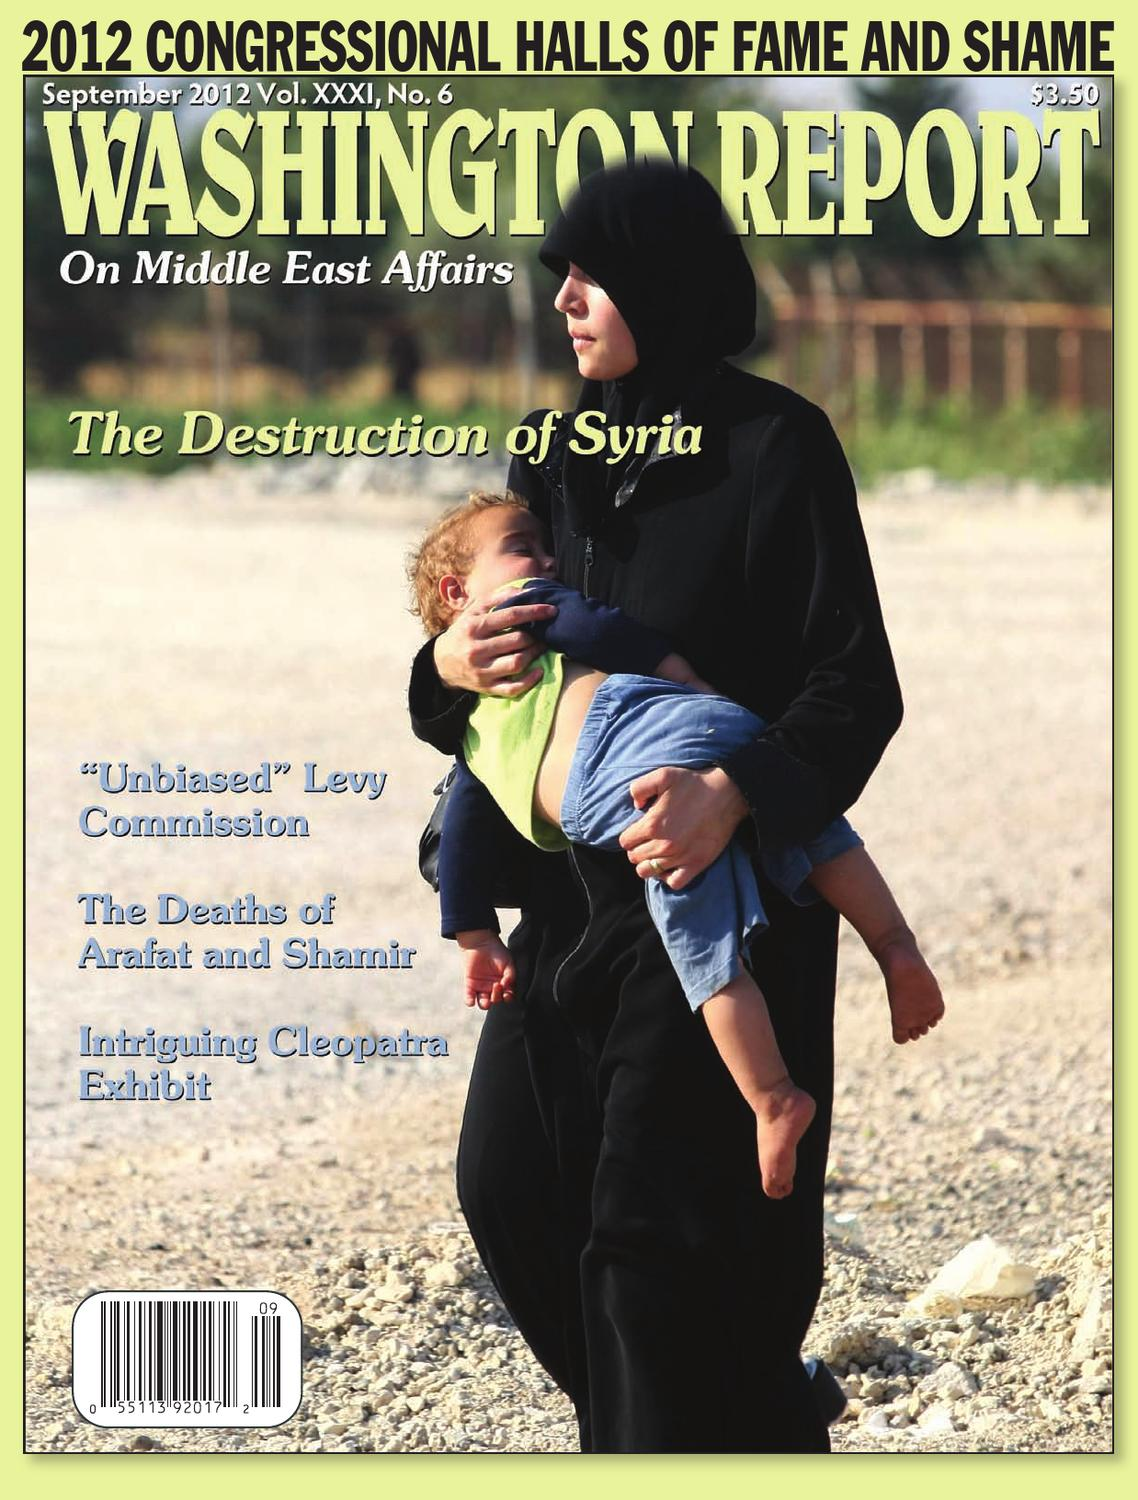 Washington Report on MIddle East Affairs | September 2012